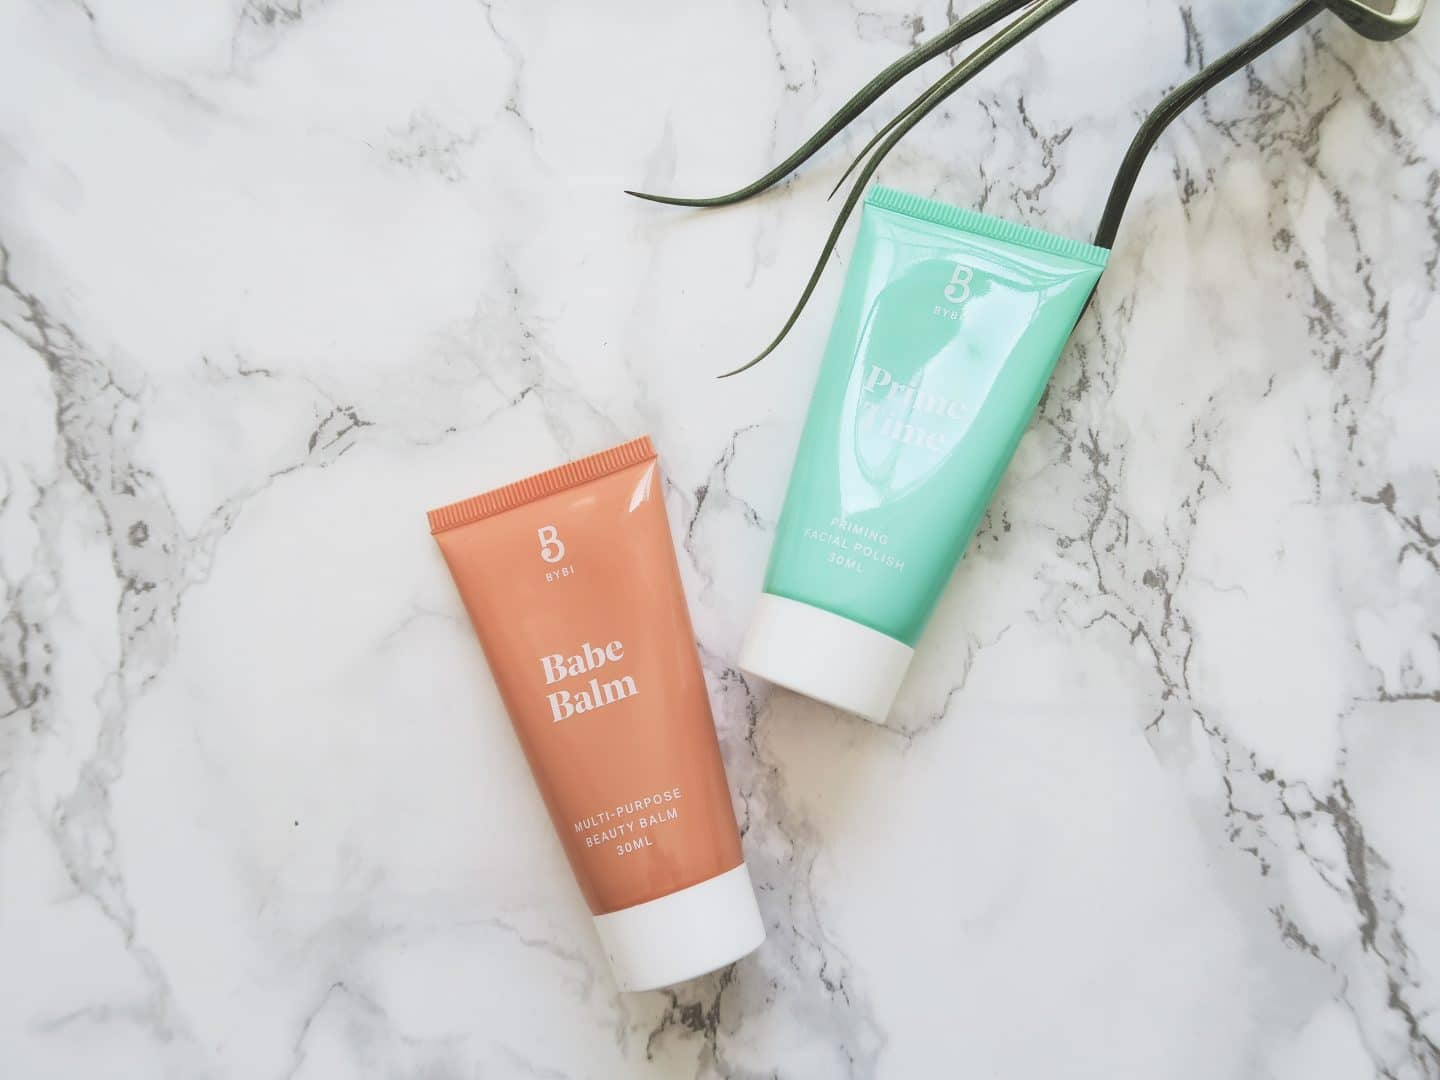 My Skincare Picks from Bybi Beauty | Curiously Conscious